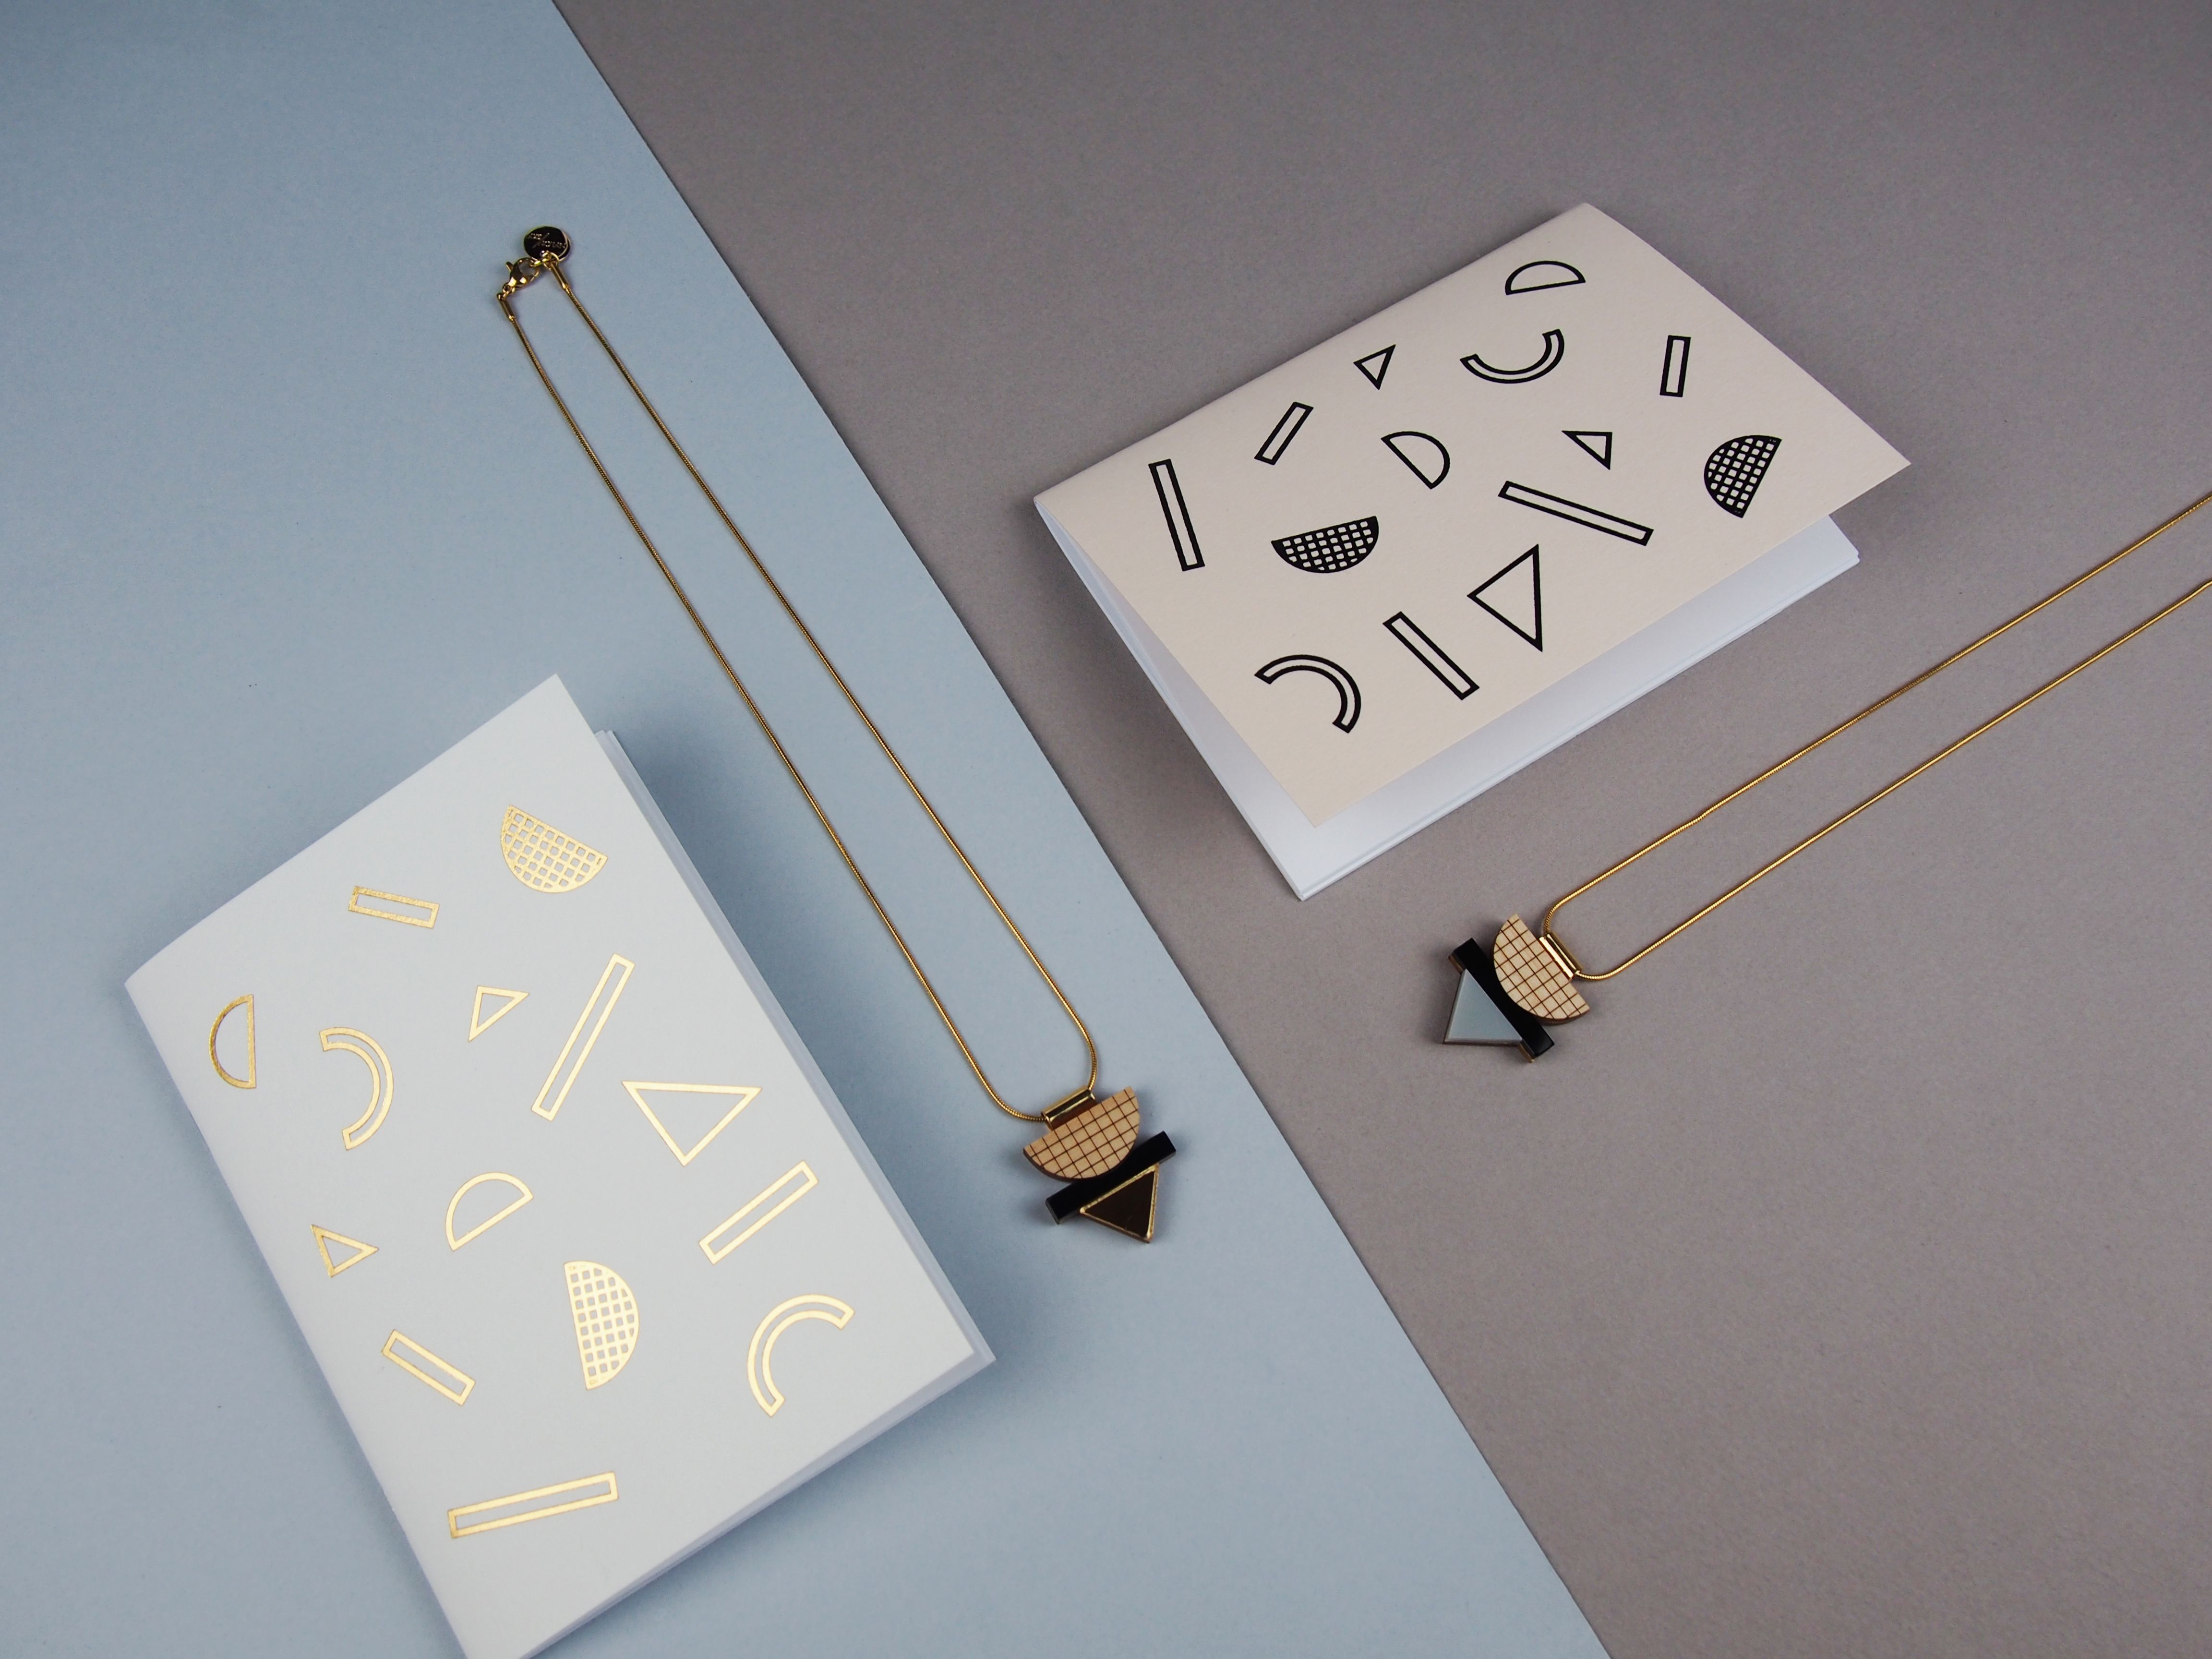 @NylonSkyPins  are a #jewellery and #stationery brand, inspired by a love for architecture and #graphic form. Nylon Sky started producing #statement jewellery in 2011 and have been developing their signature style ever since. Last year saw the launch of their first stationery range, echoing the #geometric form of their jewellery pieces.